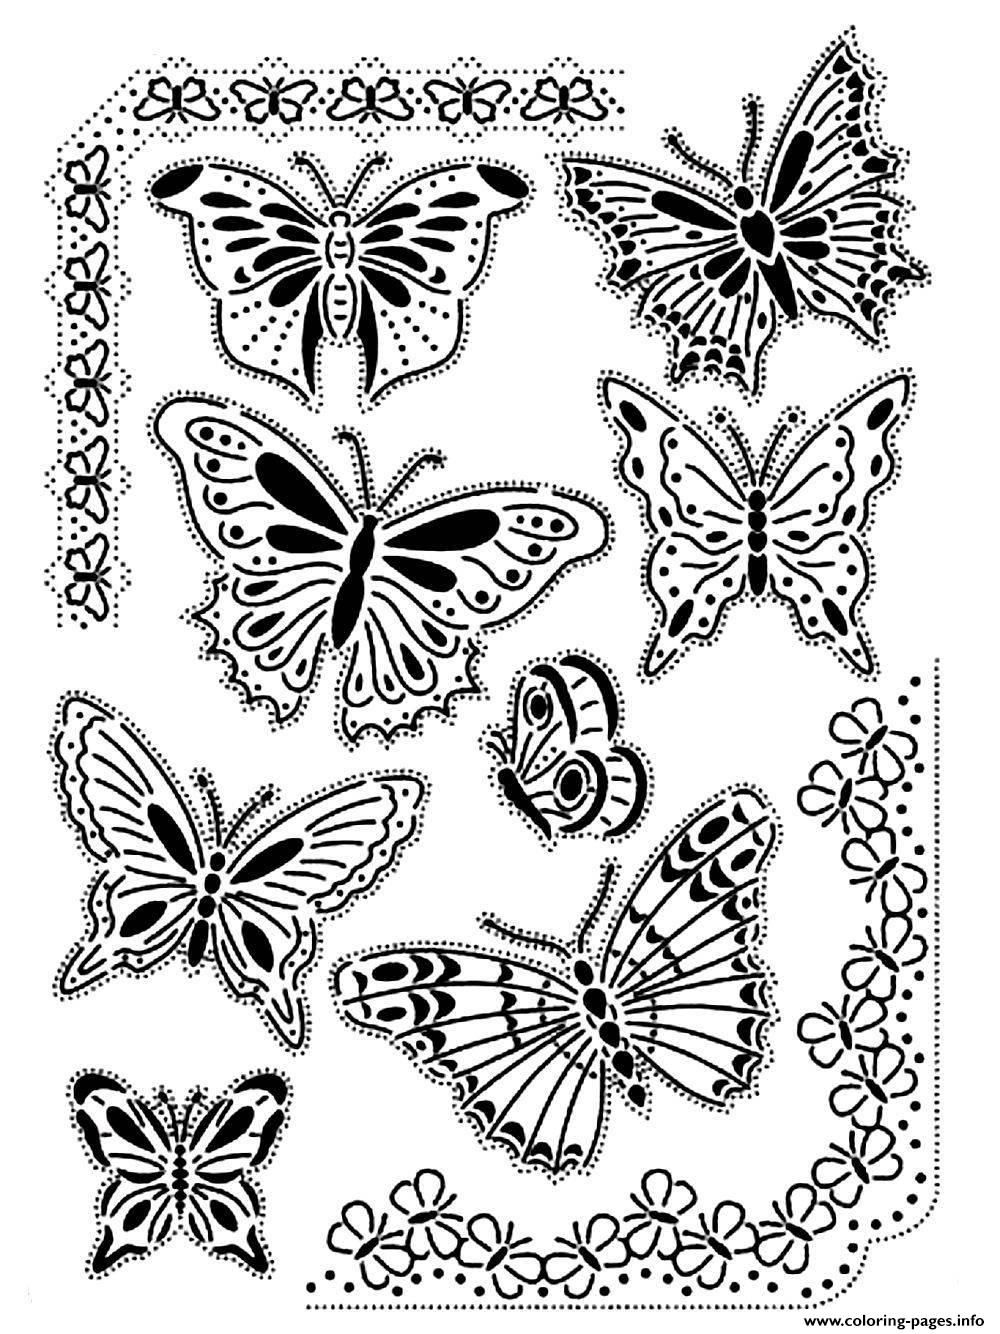 Difficult butterfly coloring pages - Coloring Pages 1451454243adult Difficult Butterflies Vintage Jpg 1000 1334